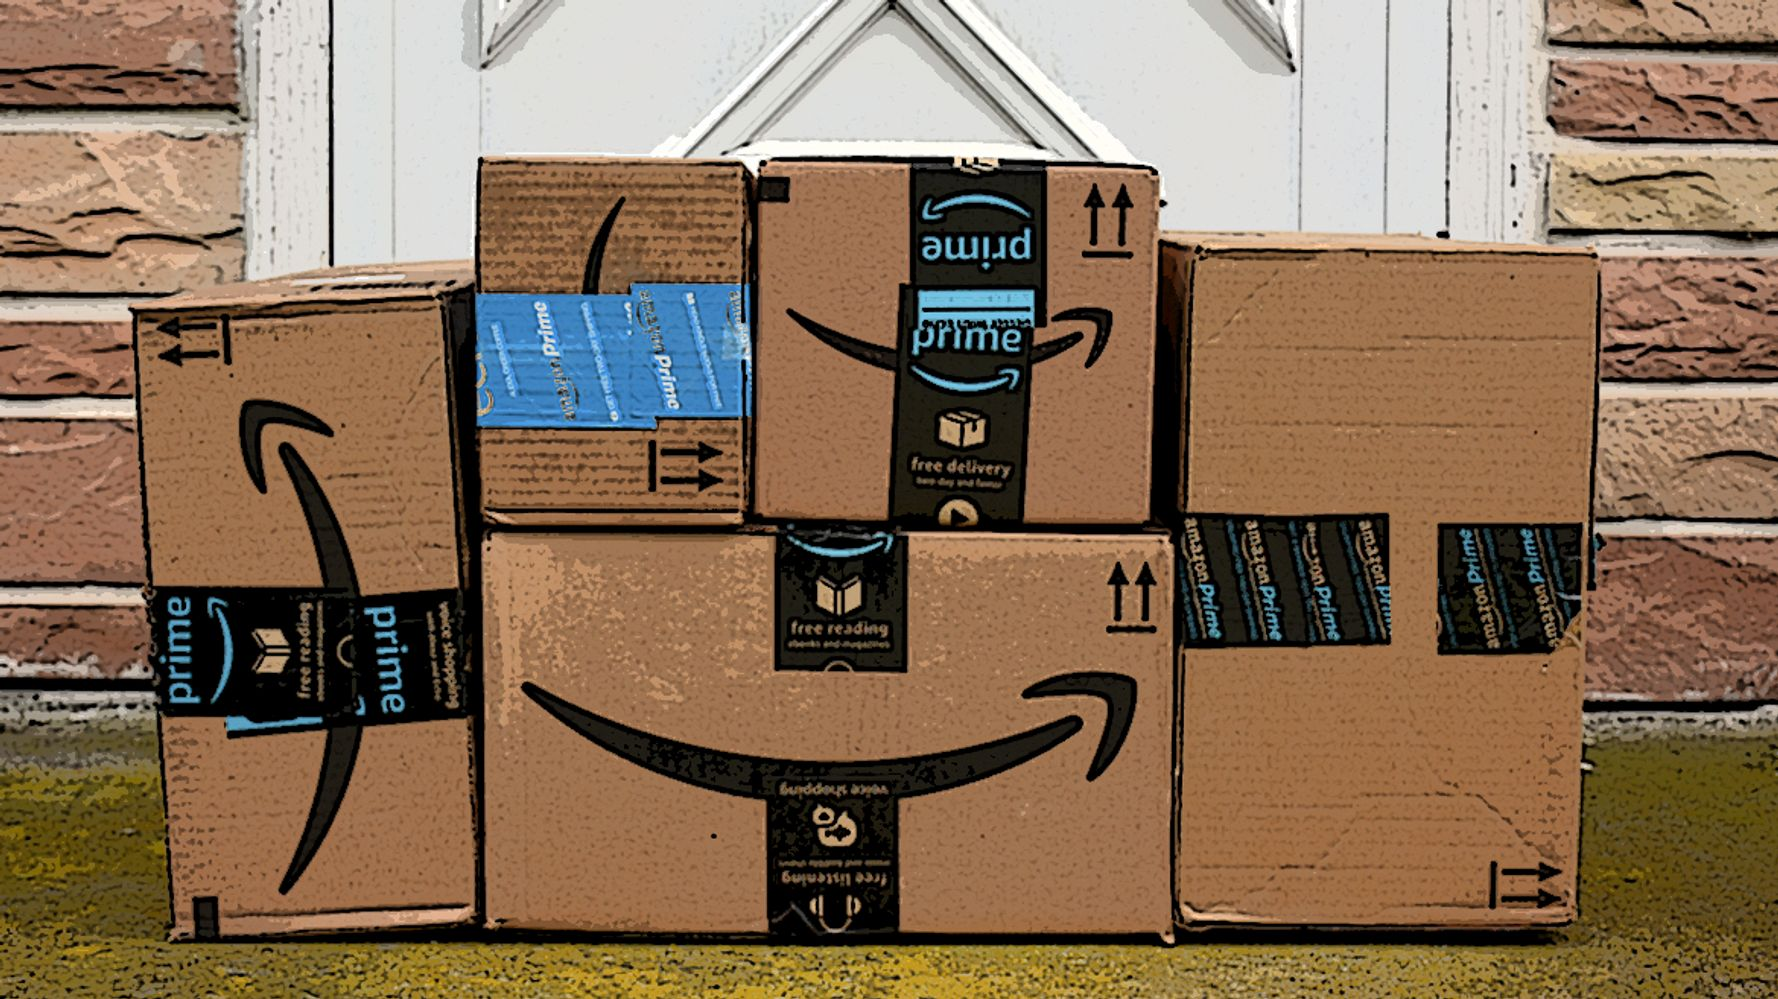 Do You Need To Be A Prime Member To Access Amazon Deals?